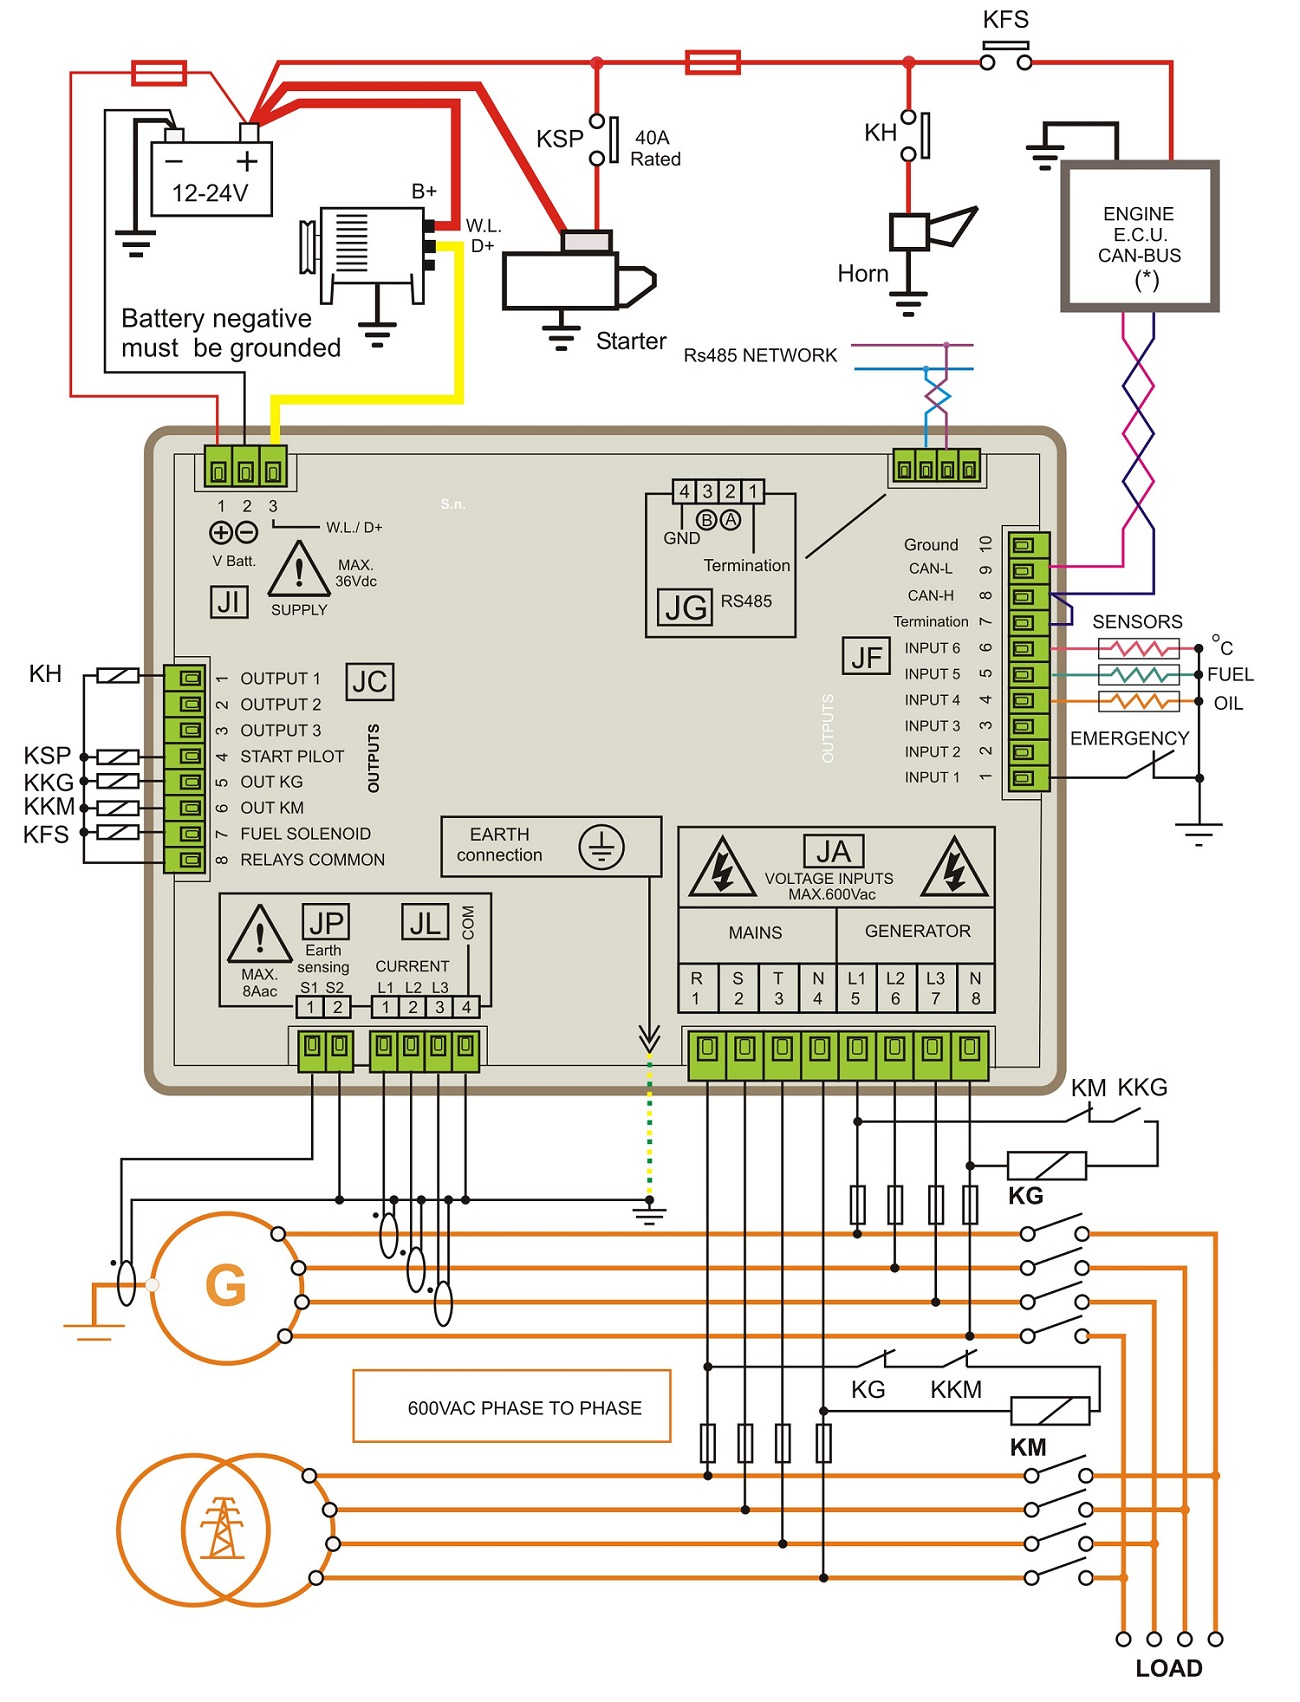 Db9 Nmea 0183 Wiring Nice Place To Get Diagram Modbus Rs485 Color Coding Auto Electrical Lowrance Code Mercury Outboard